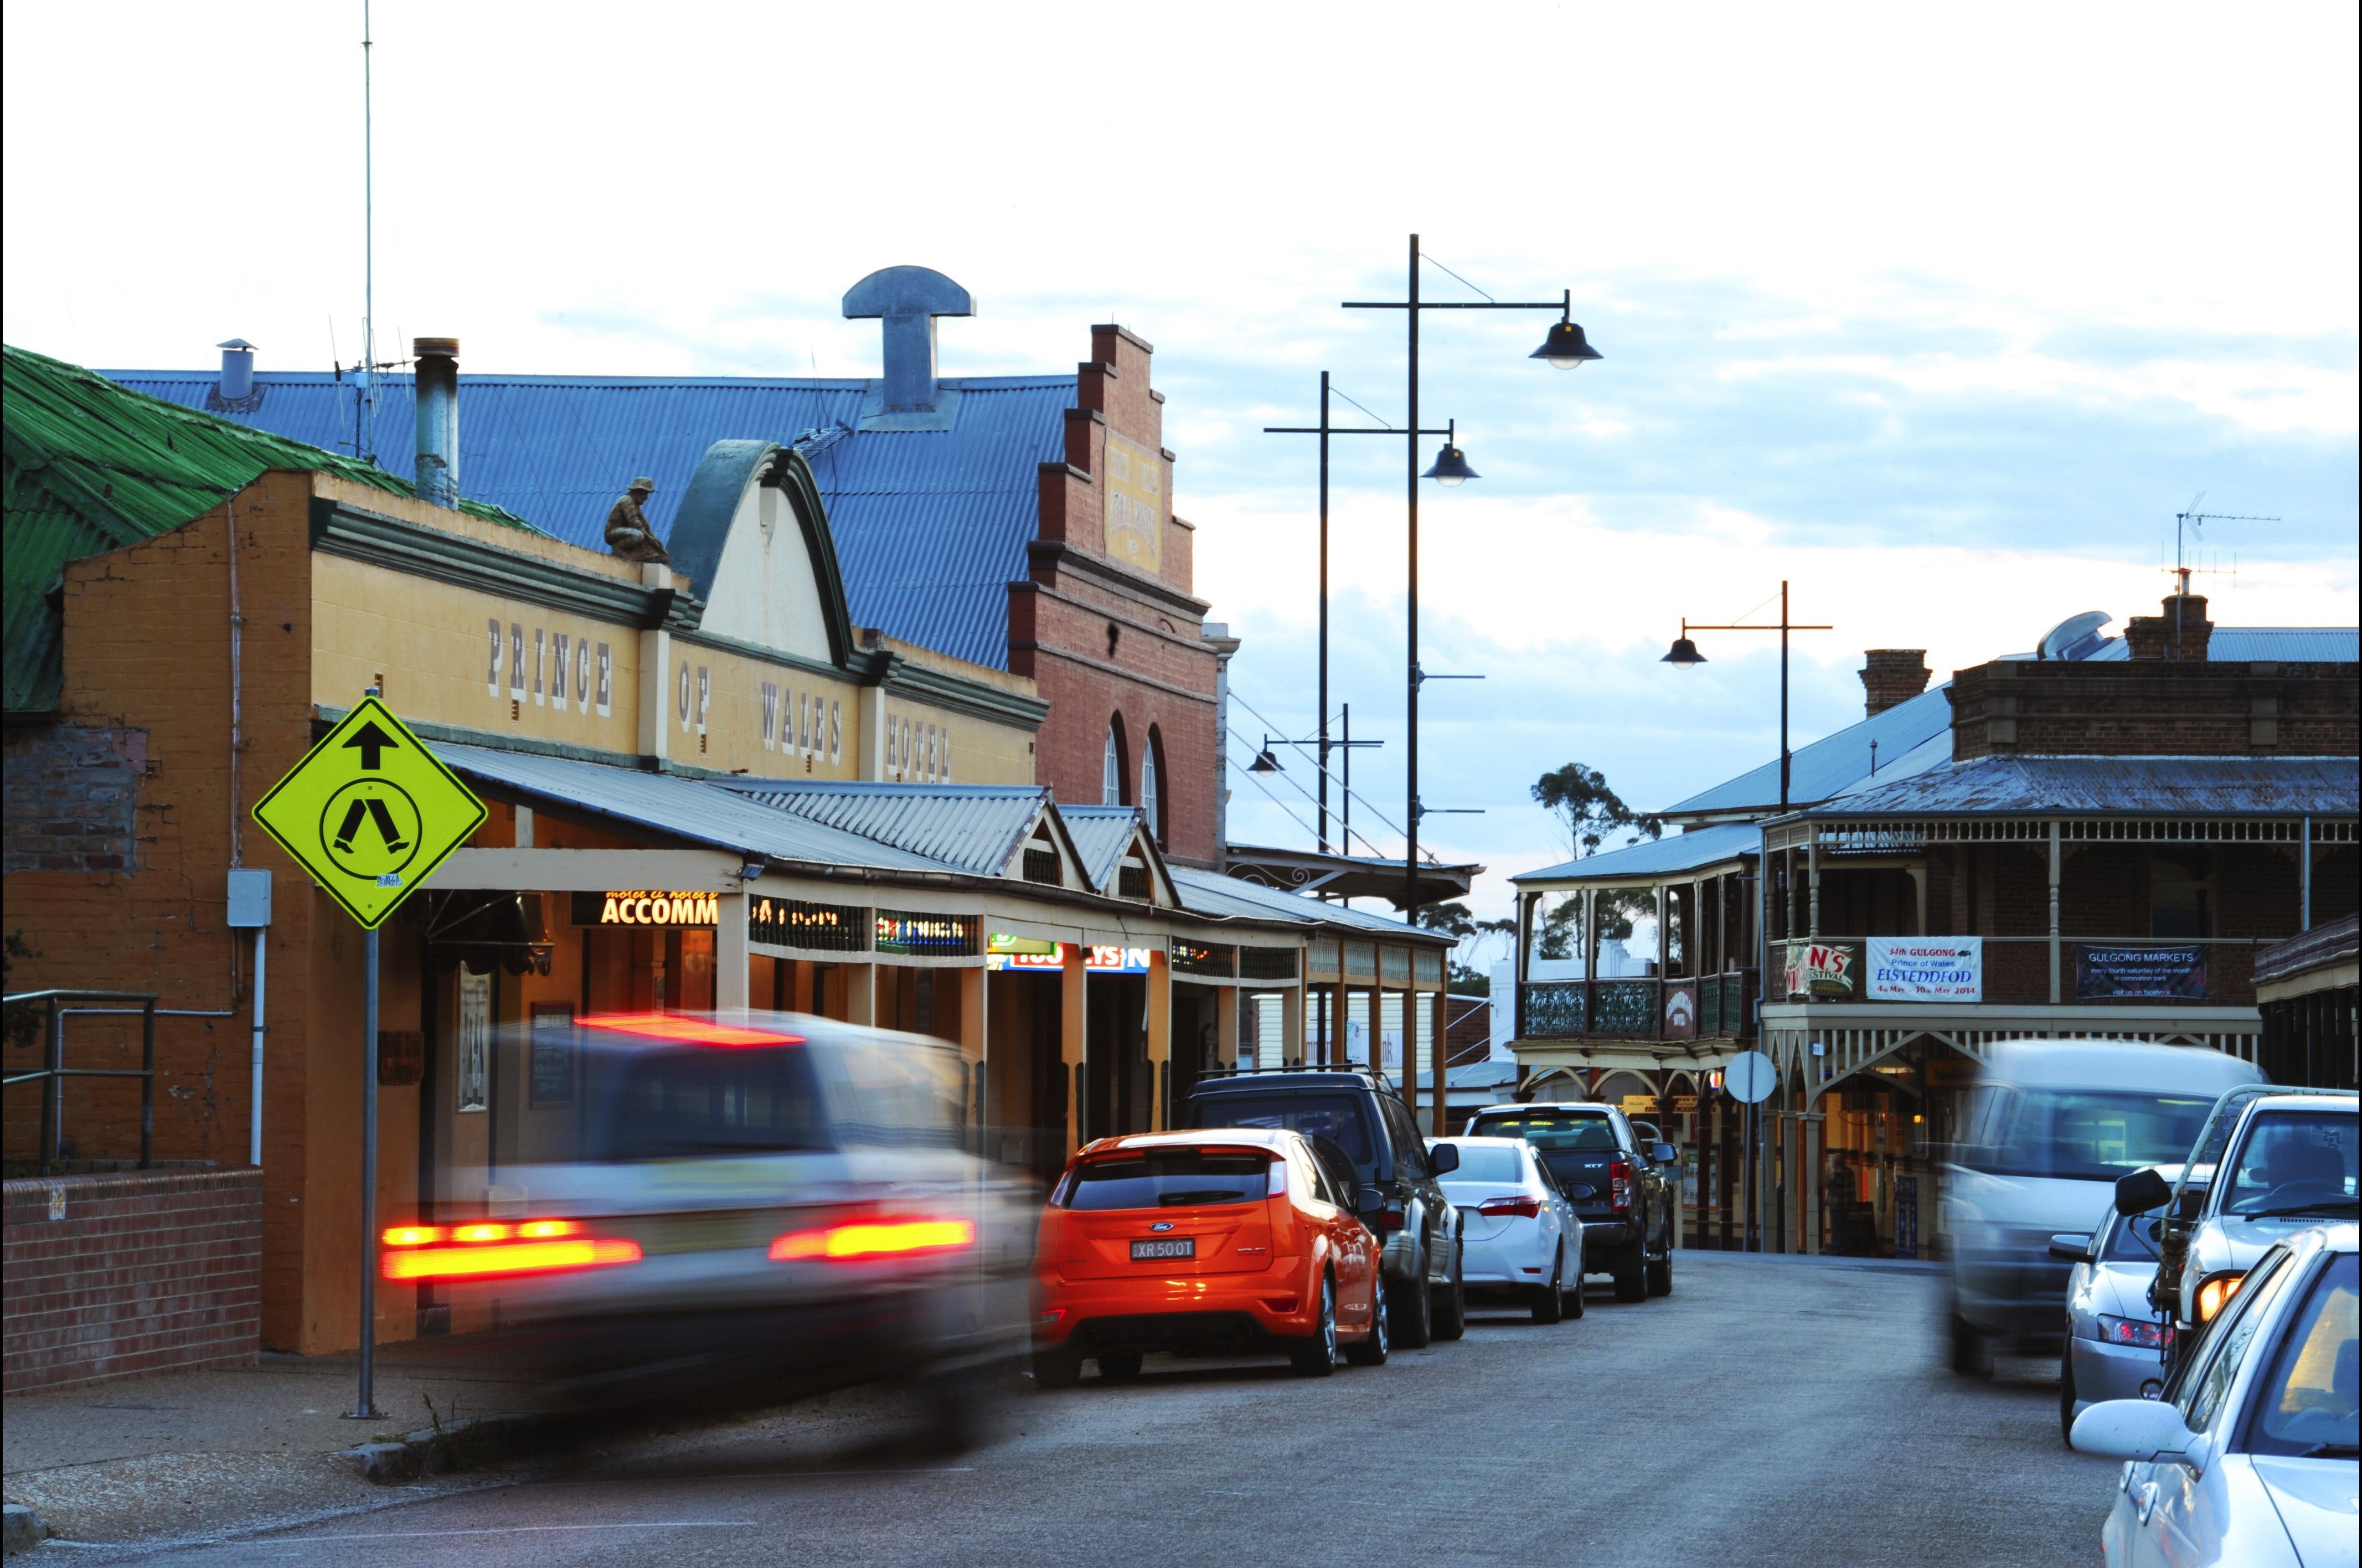 Prince Of Wales Opera House - Accommodation Batemans Bay